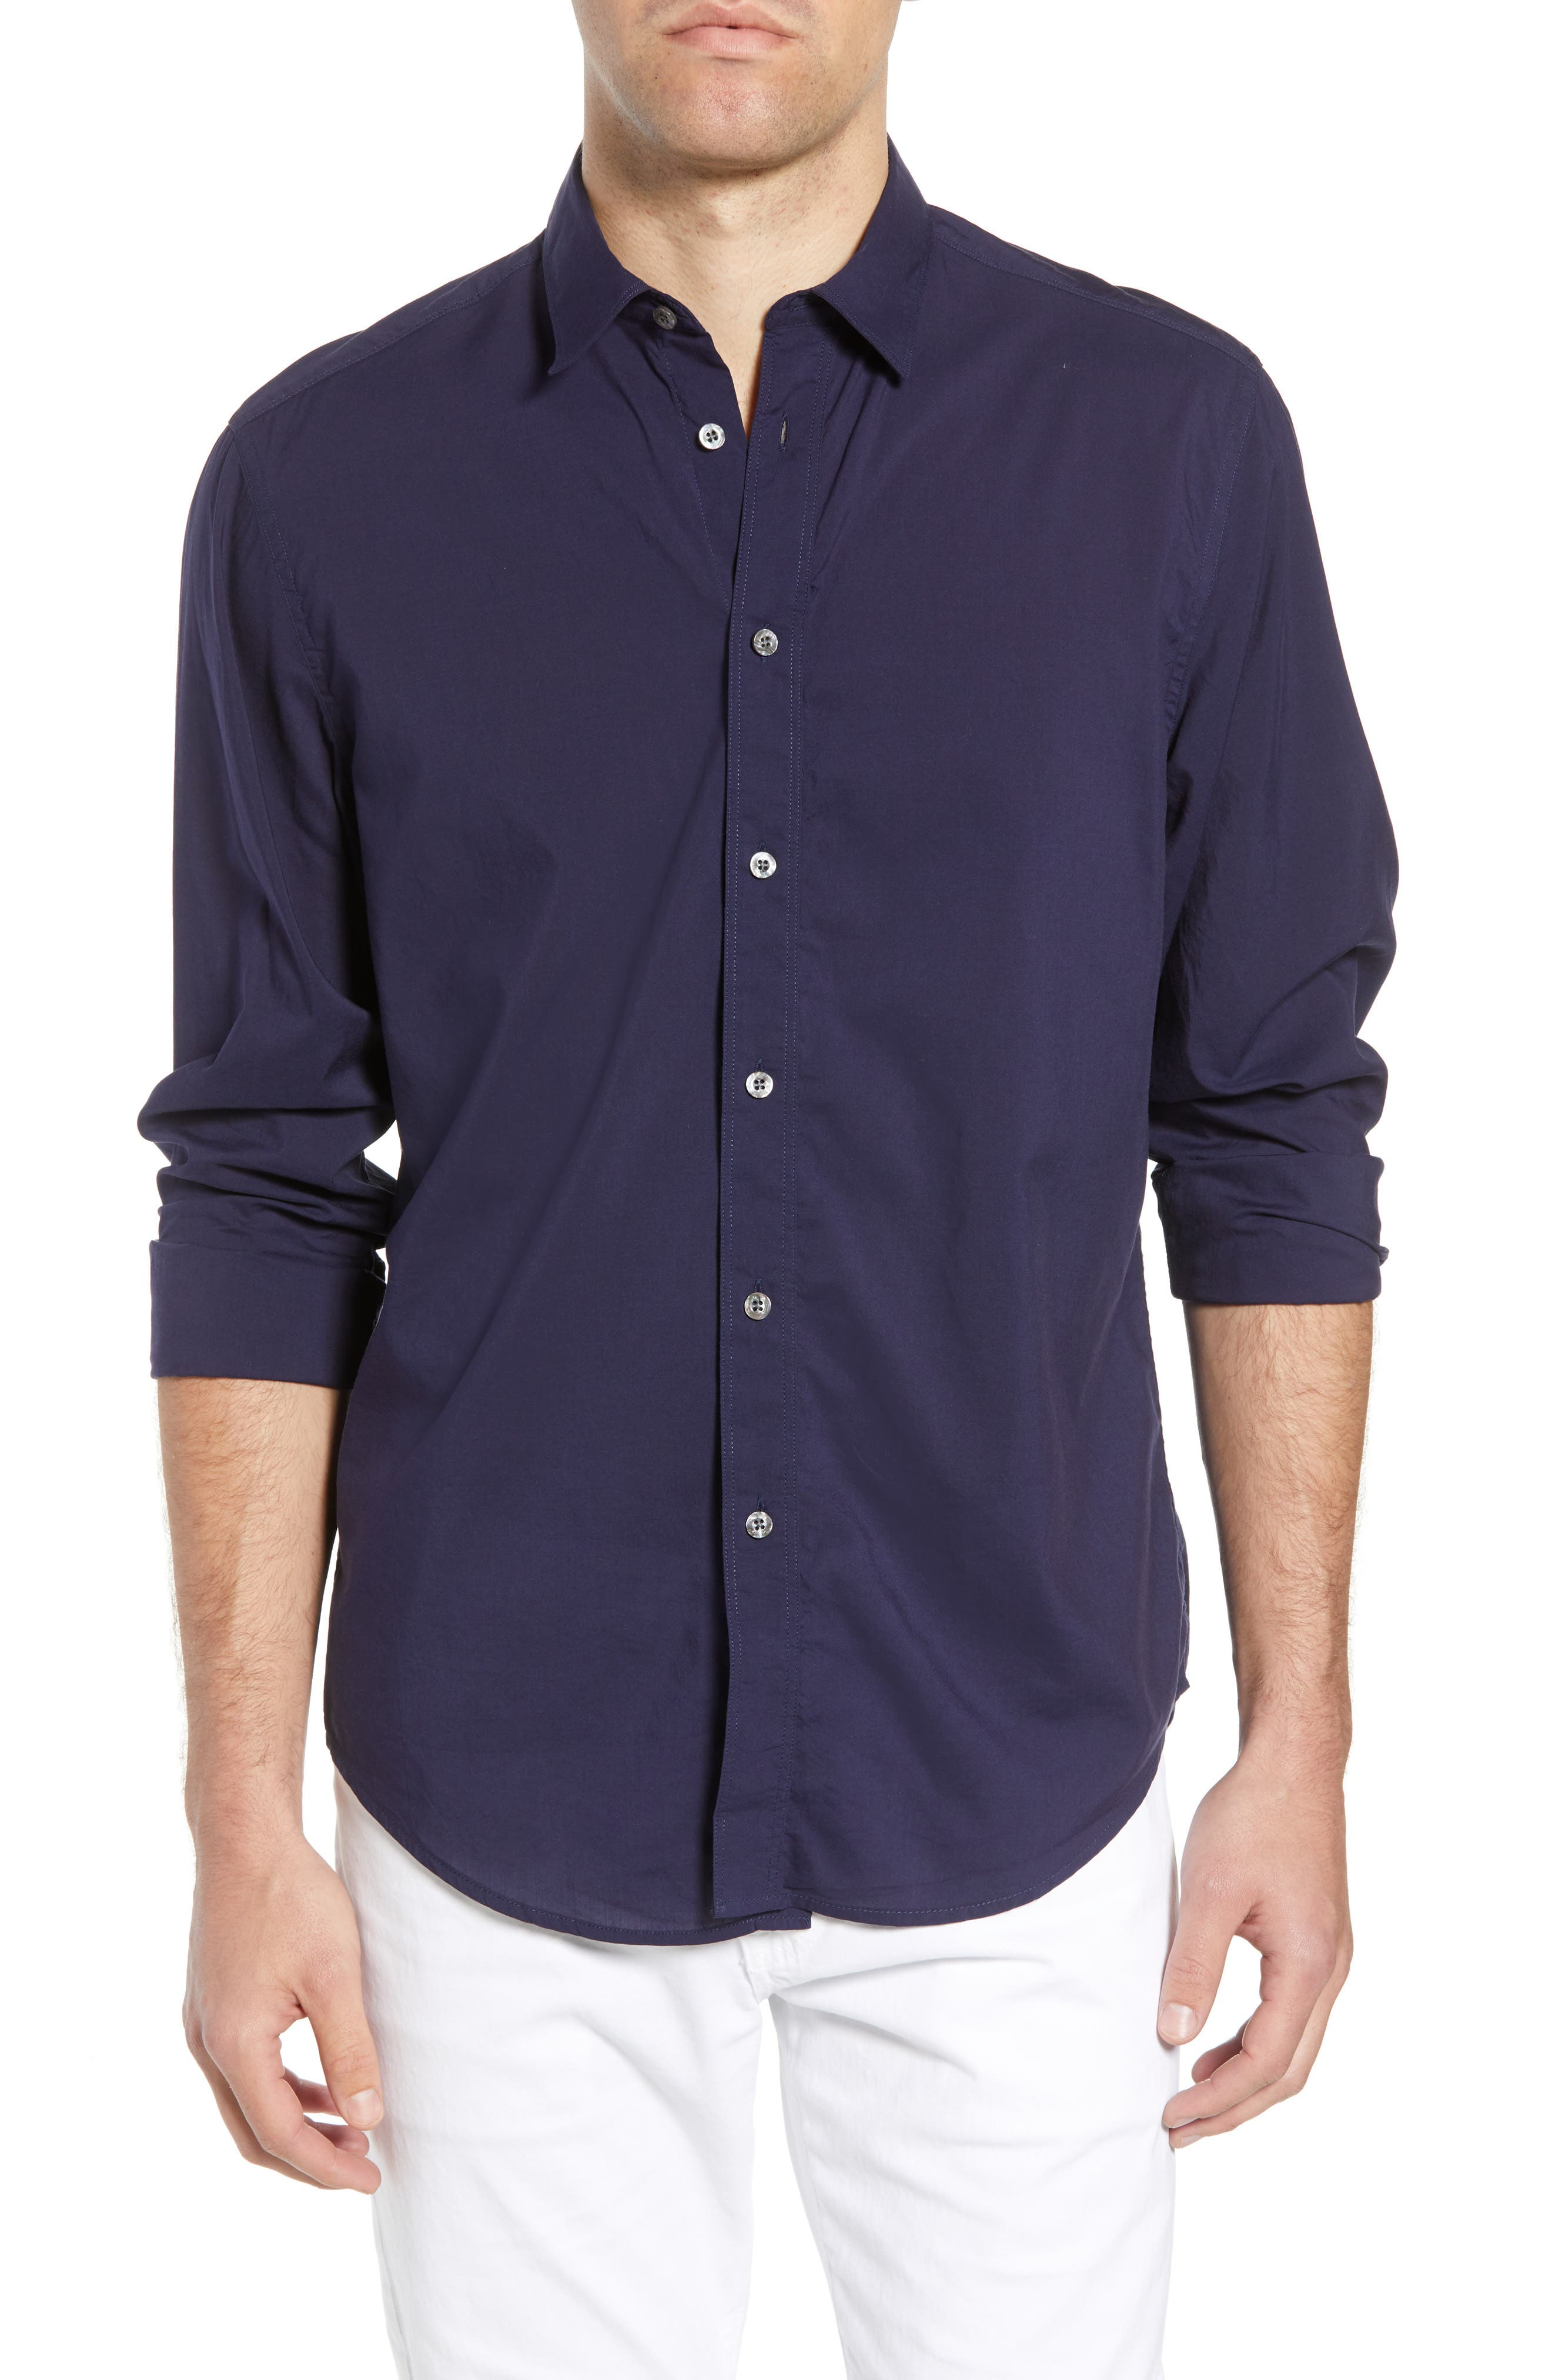 Pacifica Regular Fit Solid Sport Shirt,                         Main,                         color, Navy